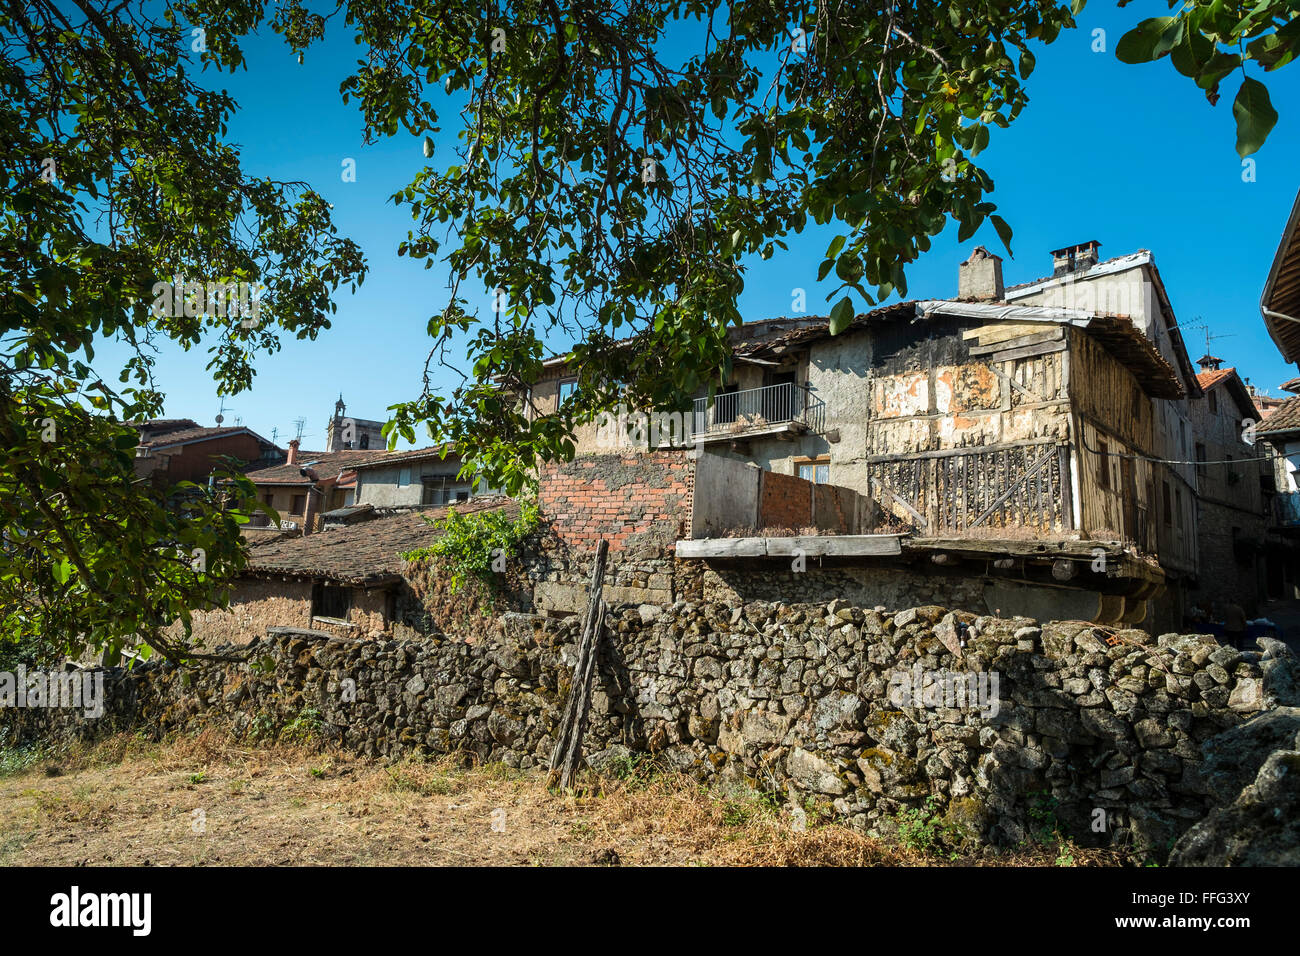 Decaying old buildings on the edge of town. La Alberca, Castille y Leon, Spain - Stock Image